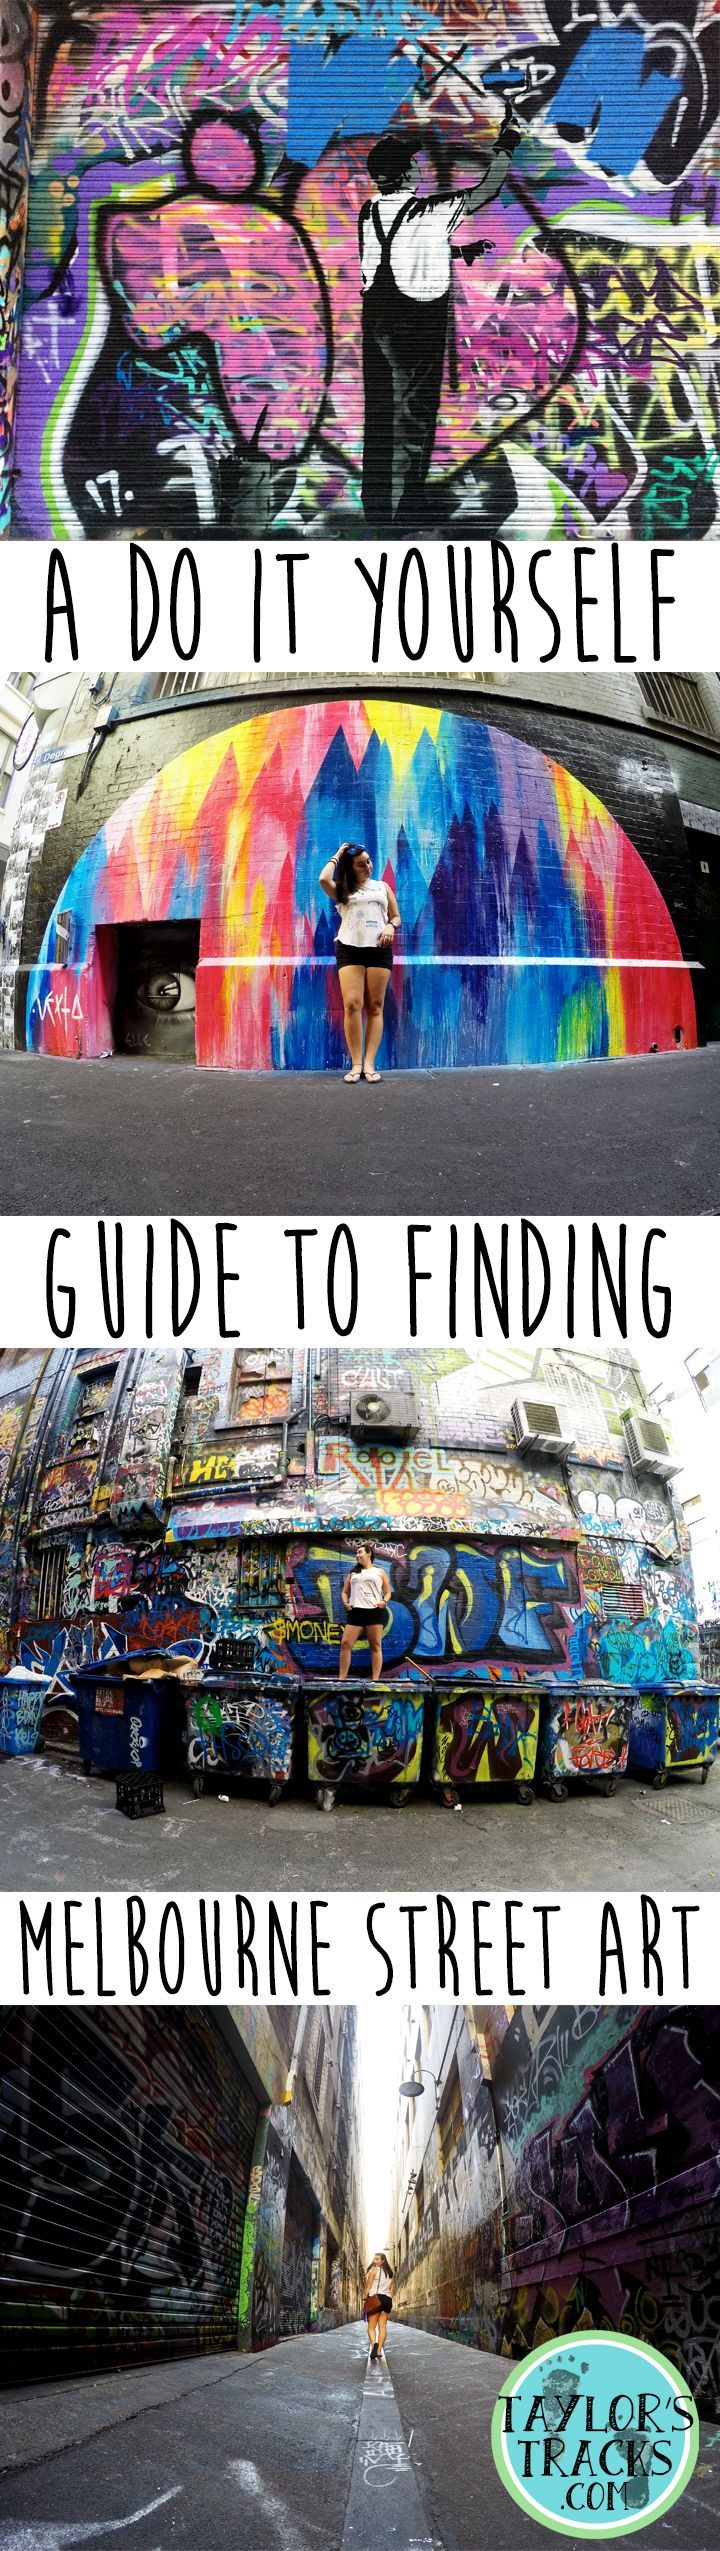 A Do It Yourself Guide to Finding Melbourne Street Art www.taylorstracks.com